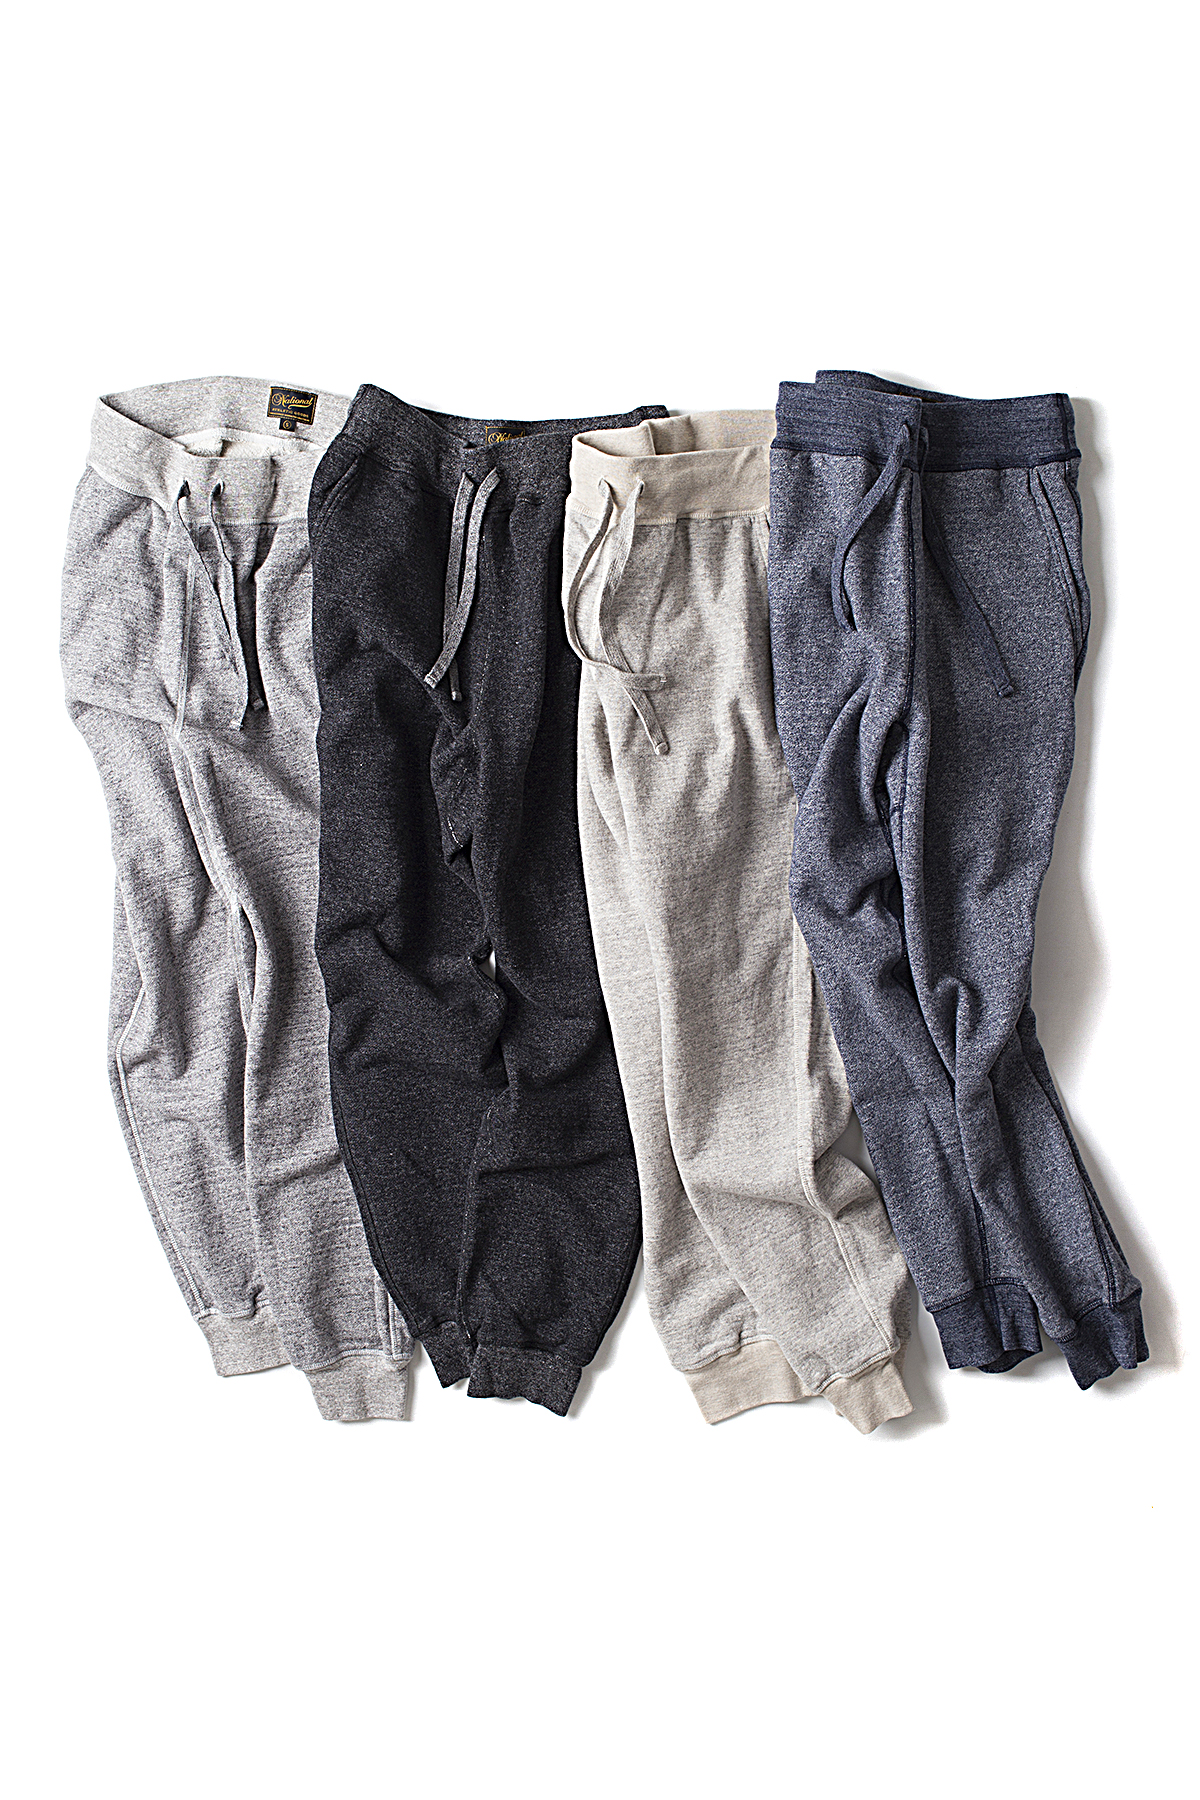 NAG : Gym Pants (4col)